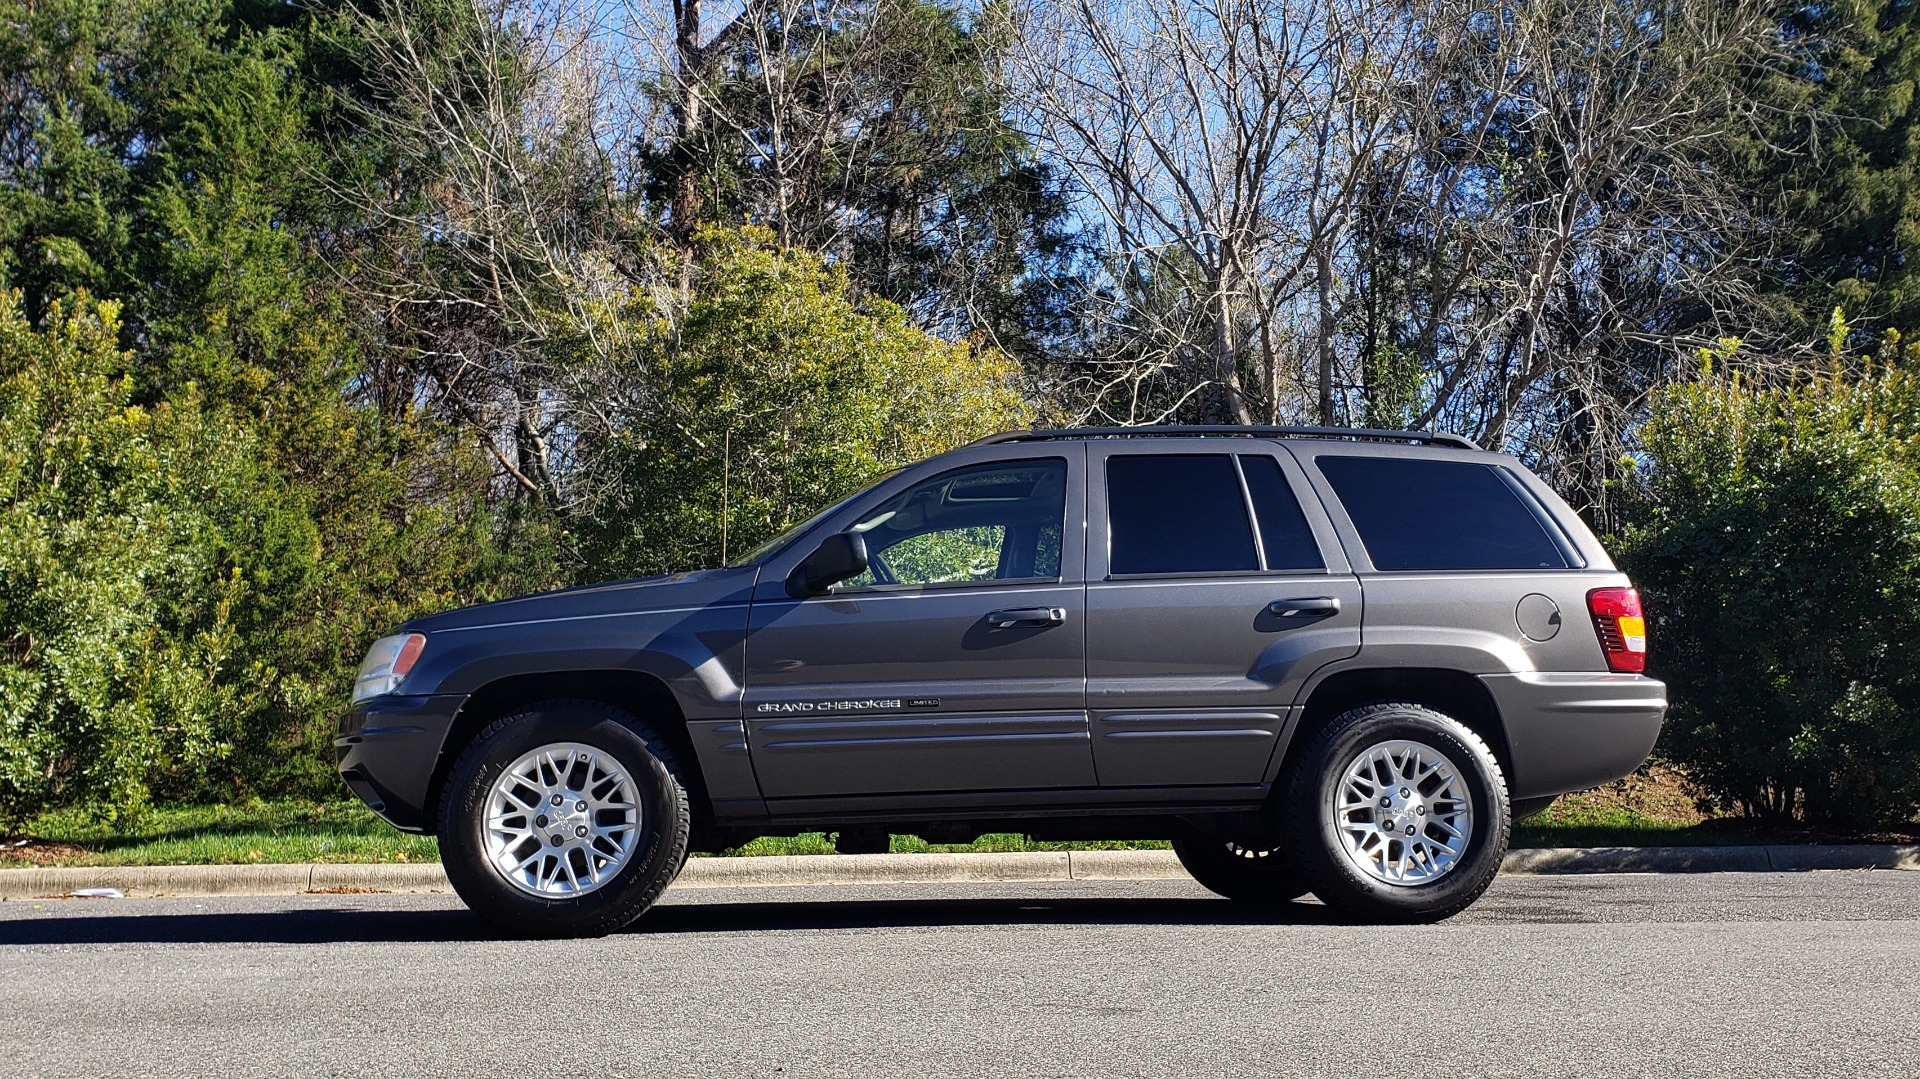 Used 2002 Jeep GRAND CHEROKEE LIMITED 4X4 / SUNROOF / 4.7L V8 / 5-SPD AUTO / CLD WTHR for sale Sold at Formula Imports in Charlotte NC 28227 2